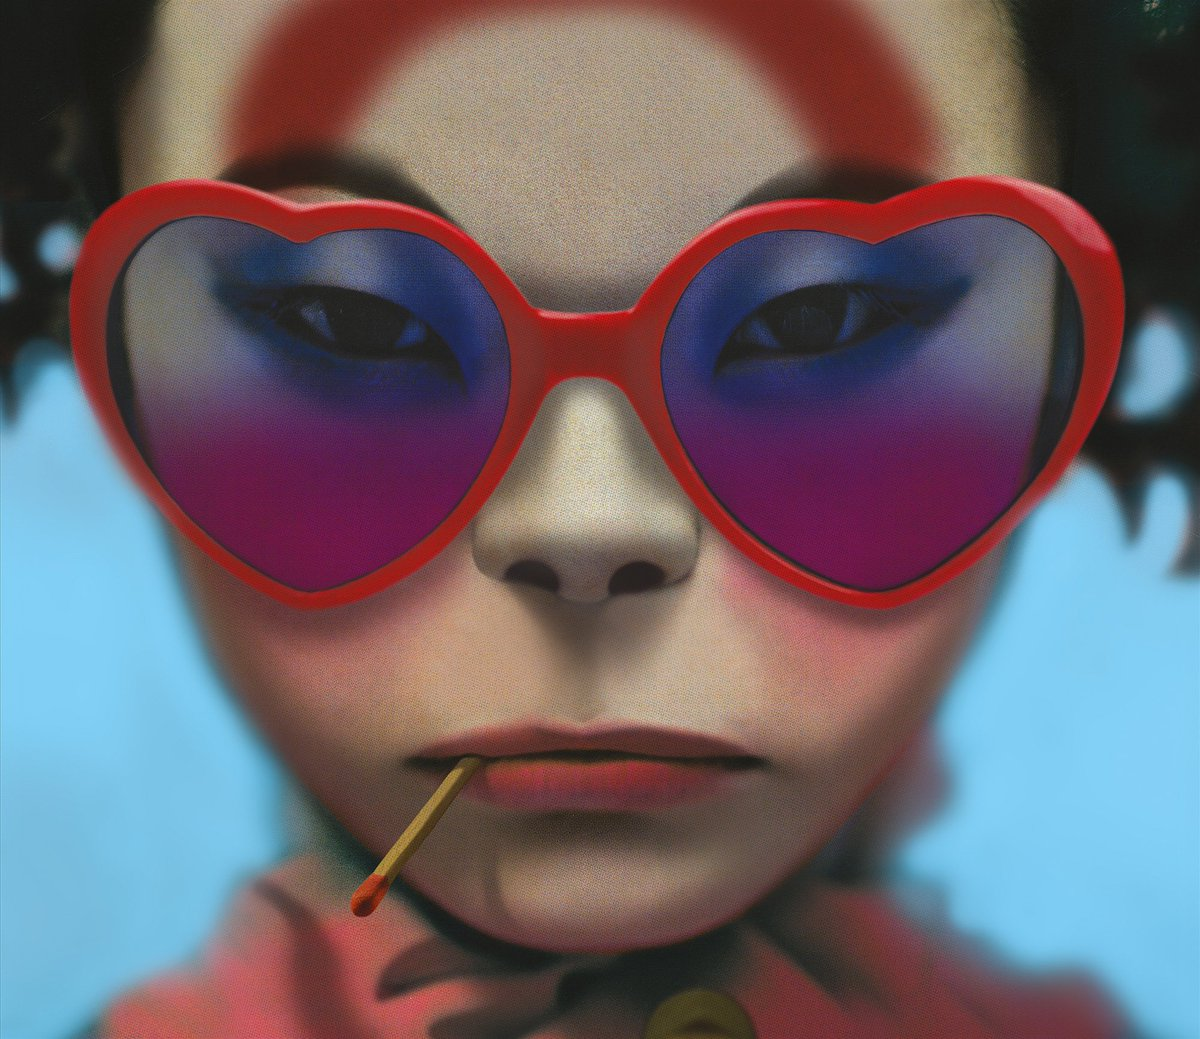 #Noodle #Humanz https://t.co/GdC7qlendz